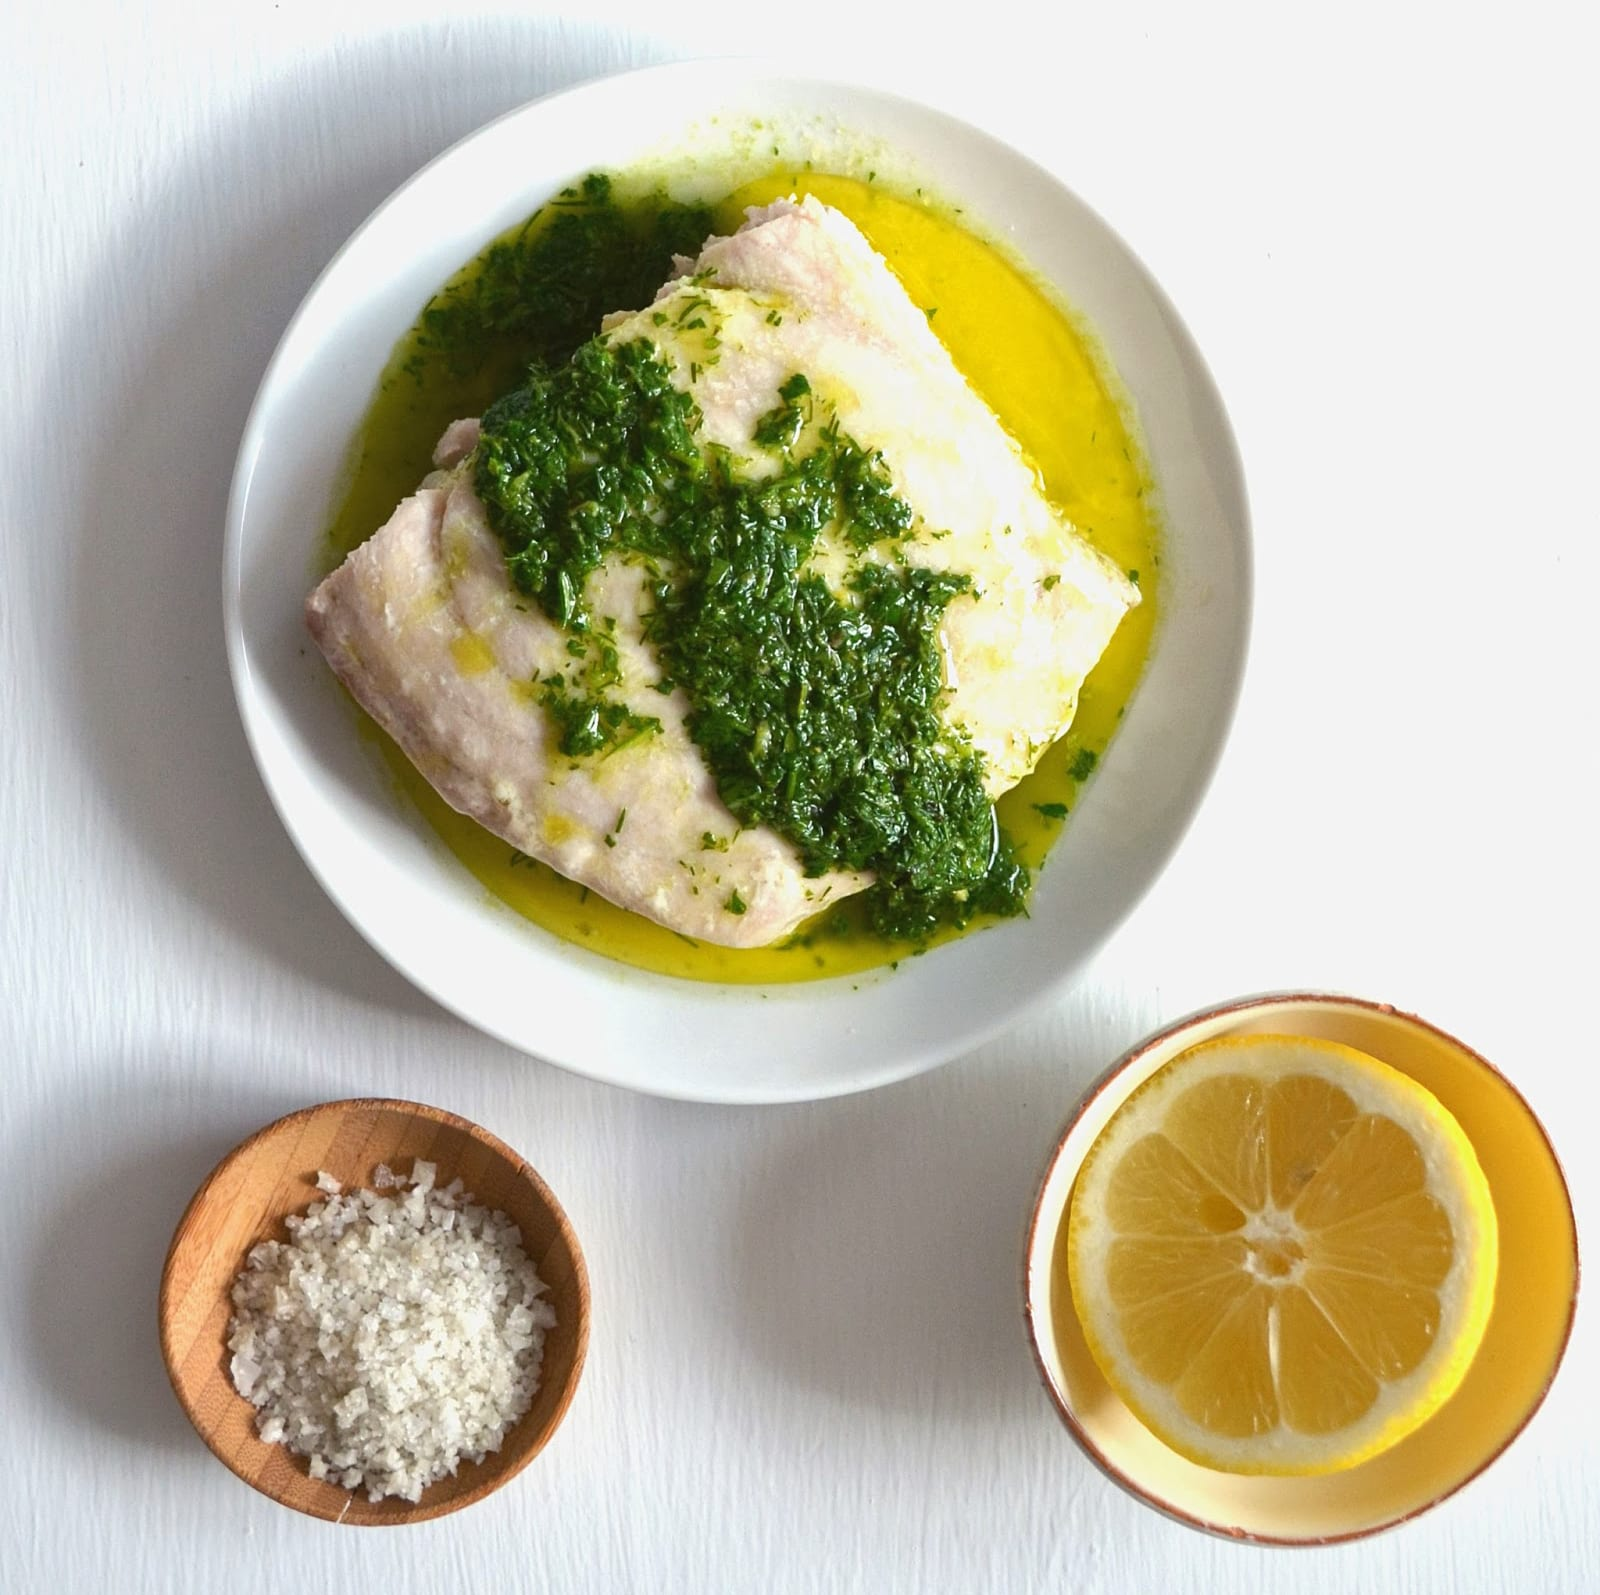 Oven-Baked Fish with Lemon Herb Sauce